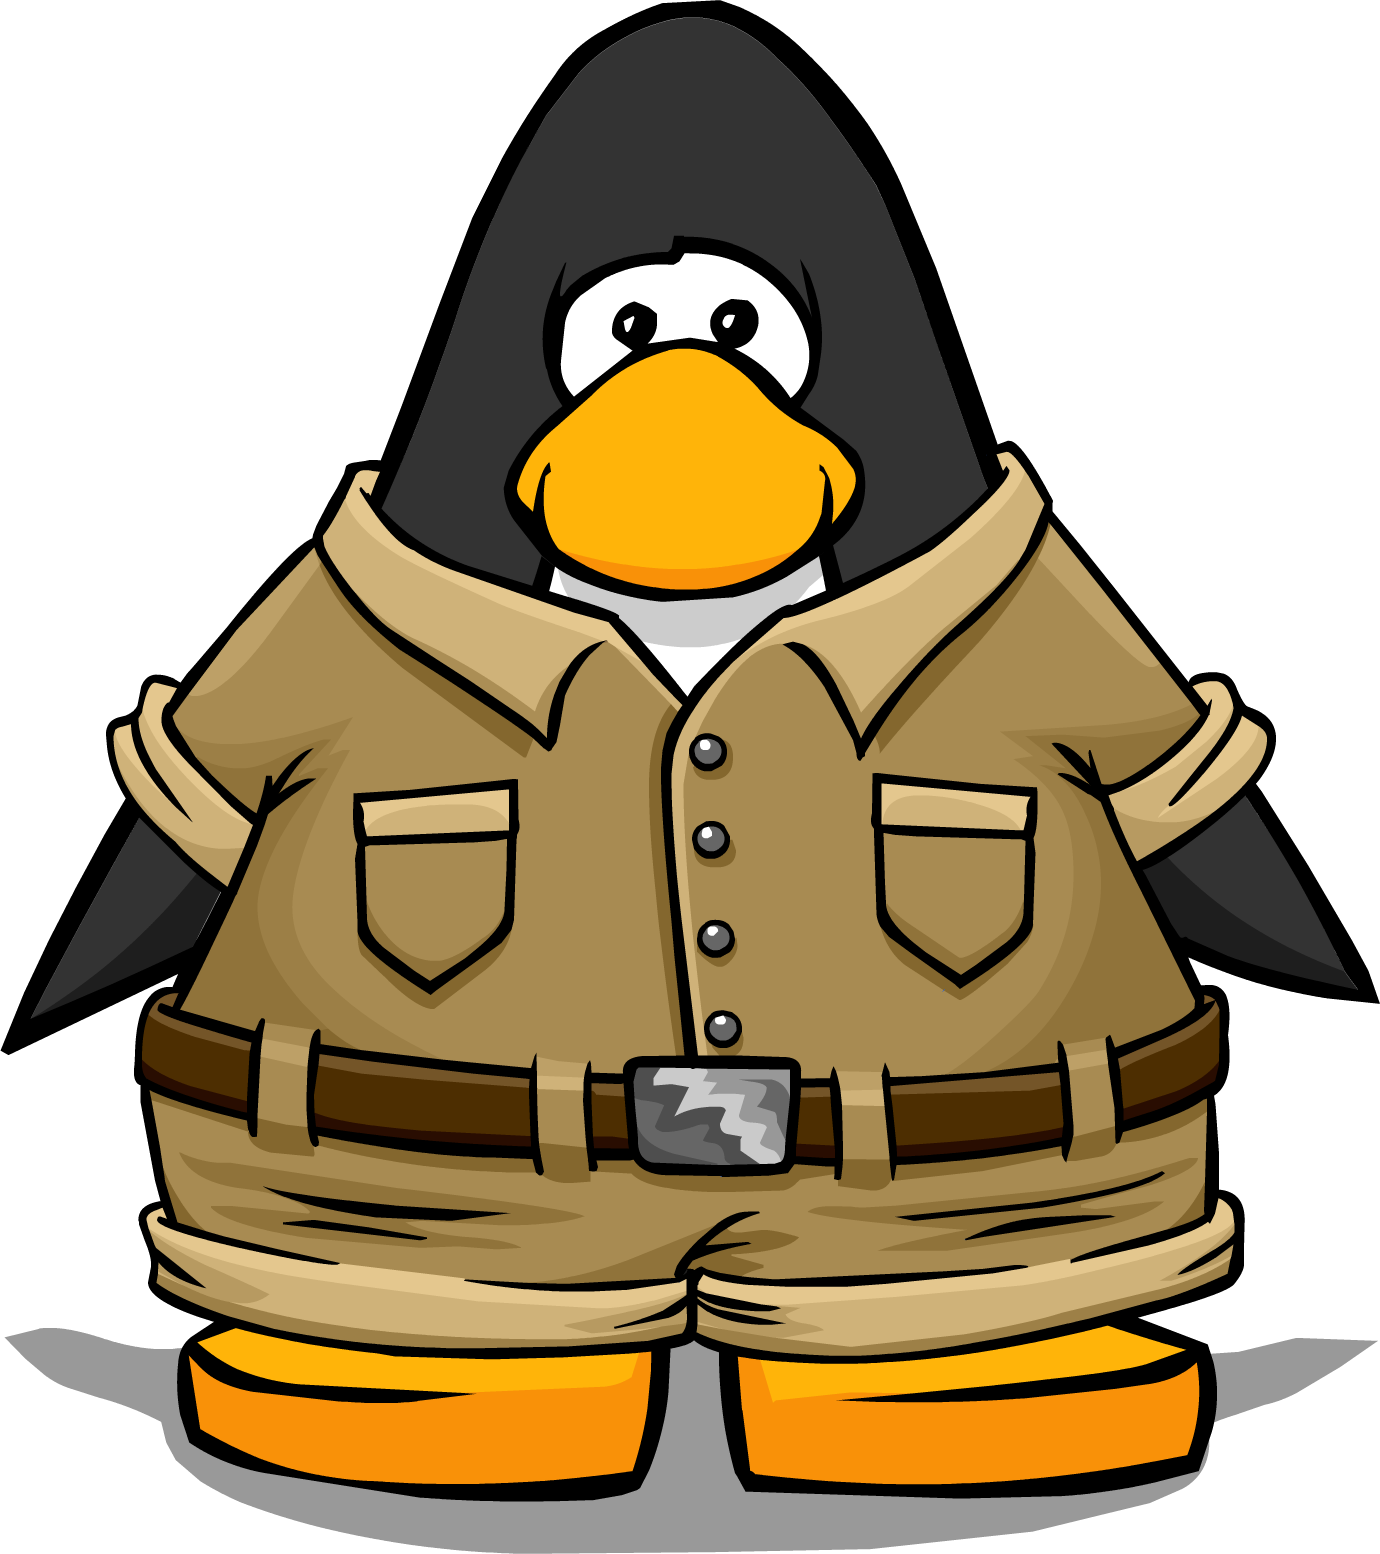 Image beige outfit from. Explorer clipart cave explorer